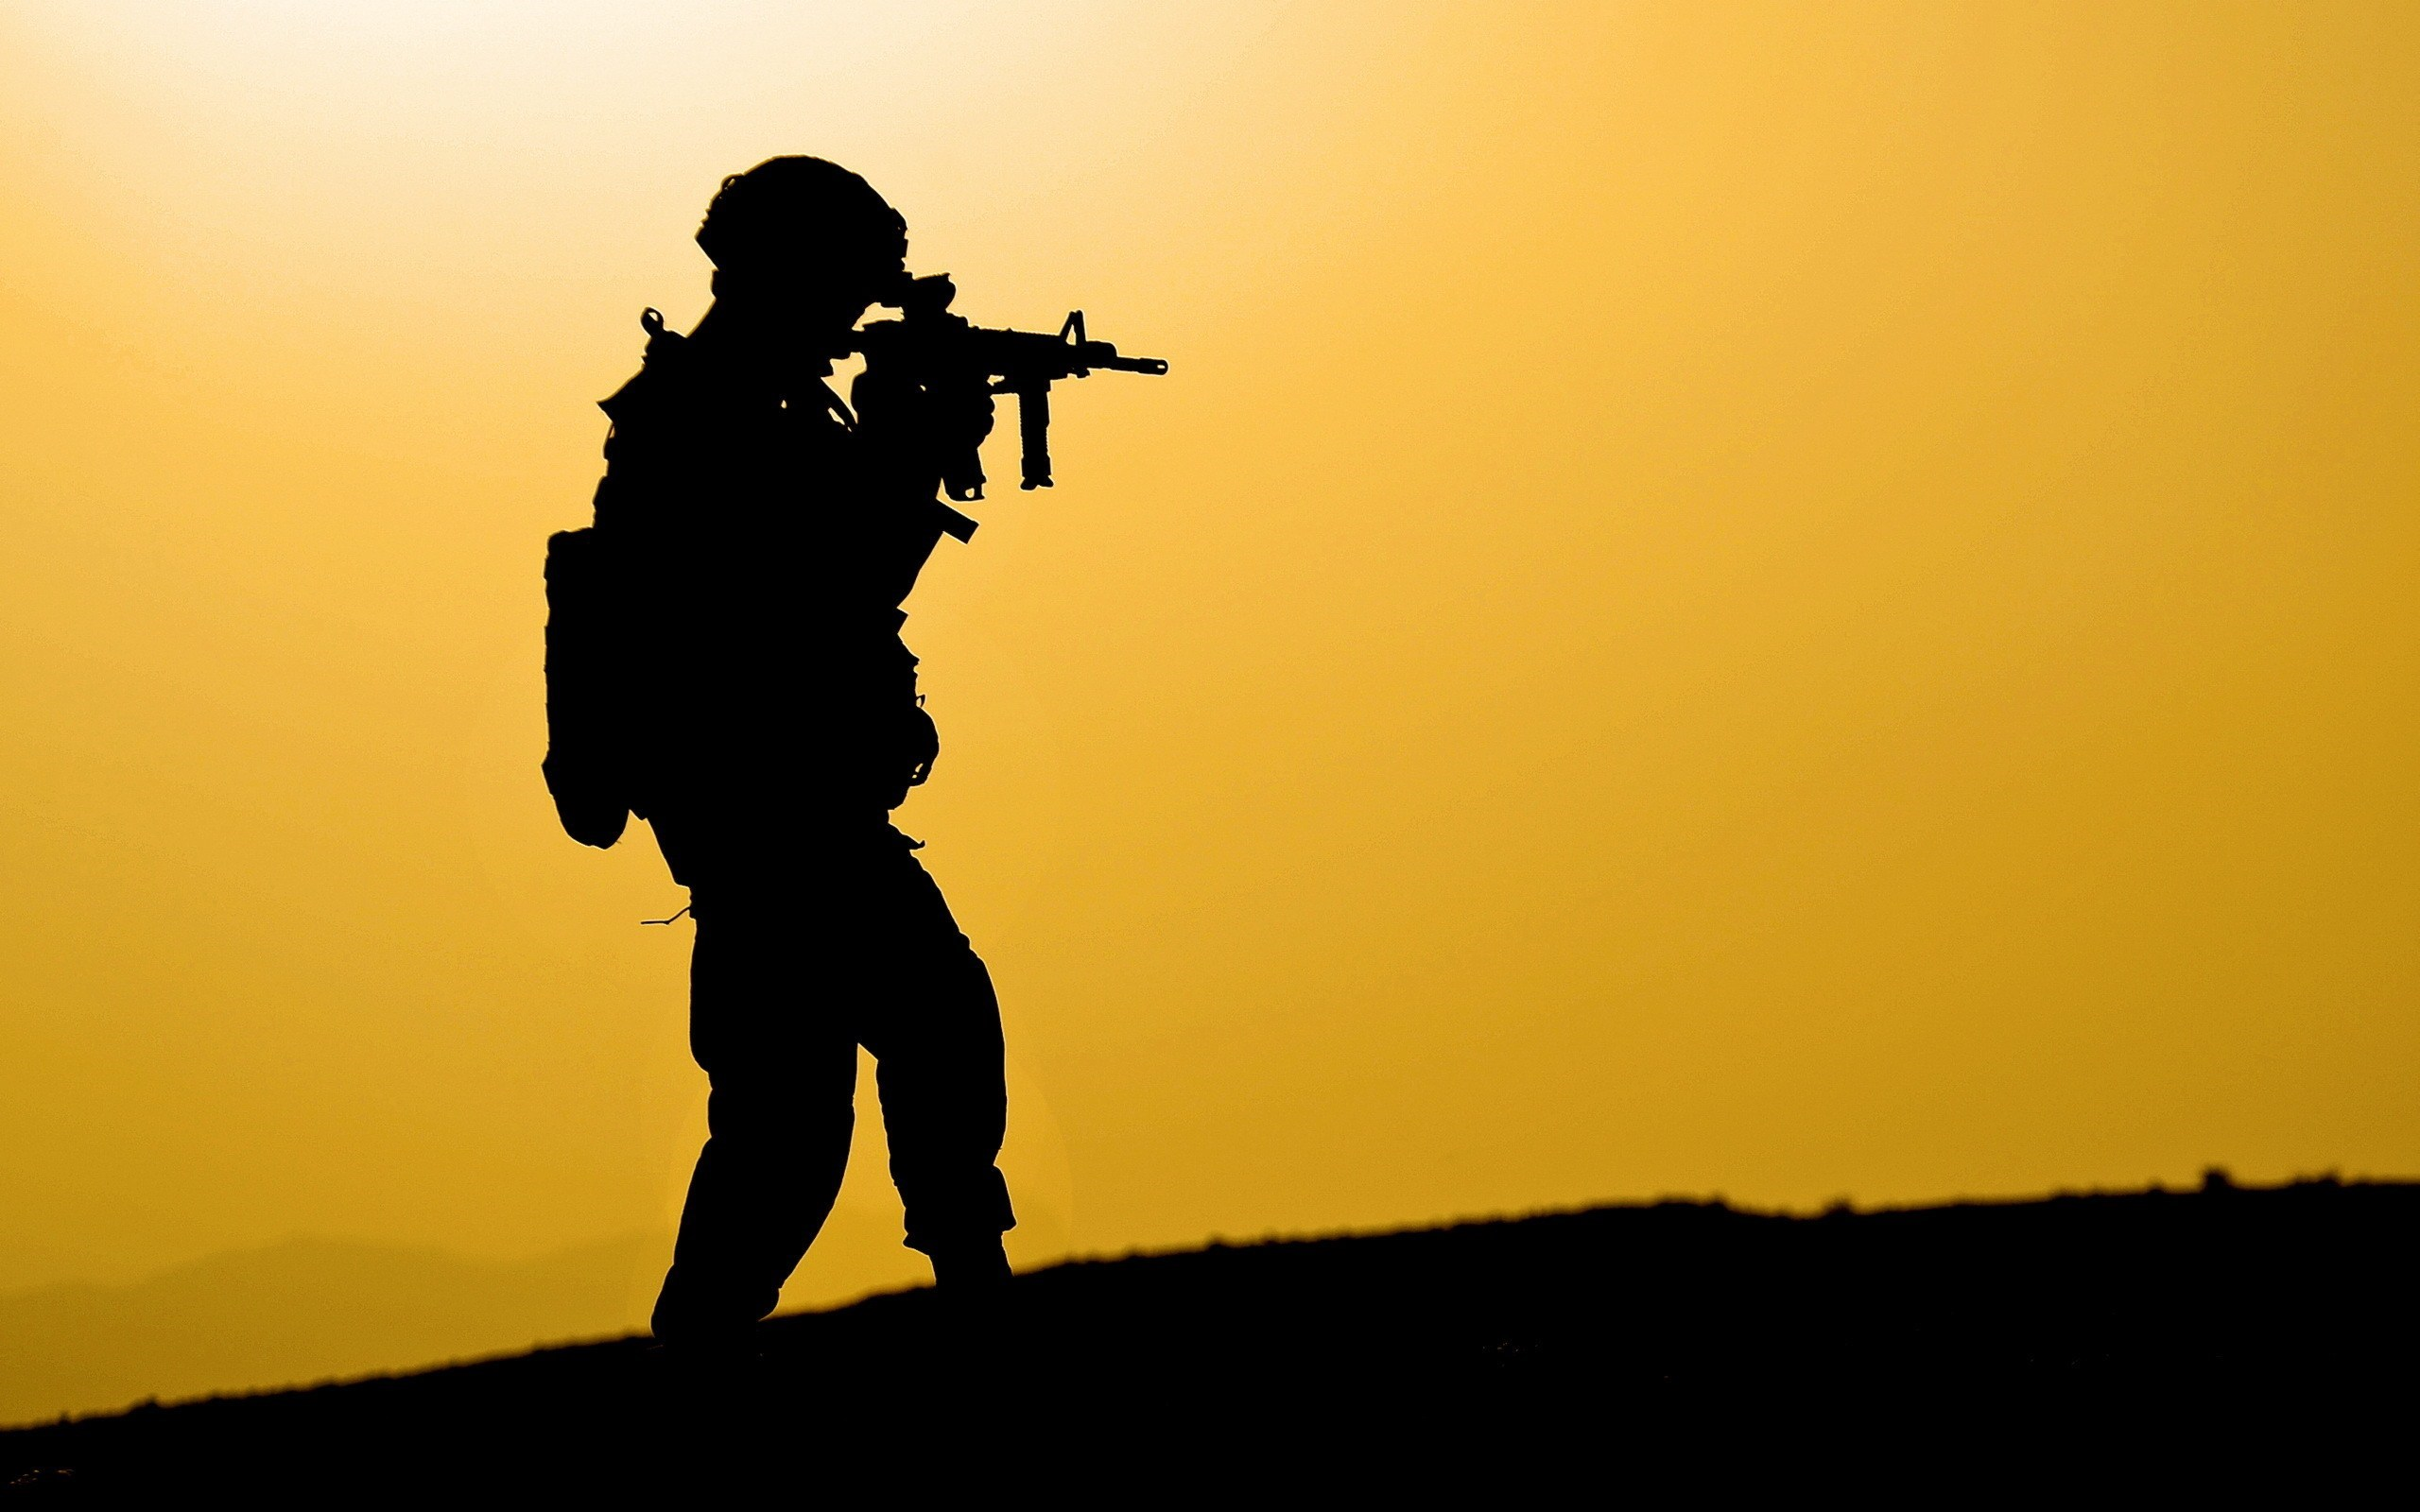 download soldier wallpaper 43498 2560x1600 px high definition wallpaper.